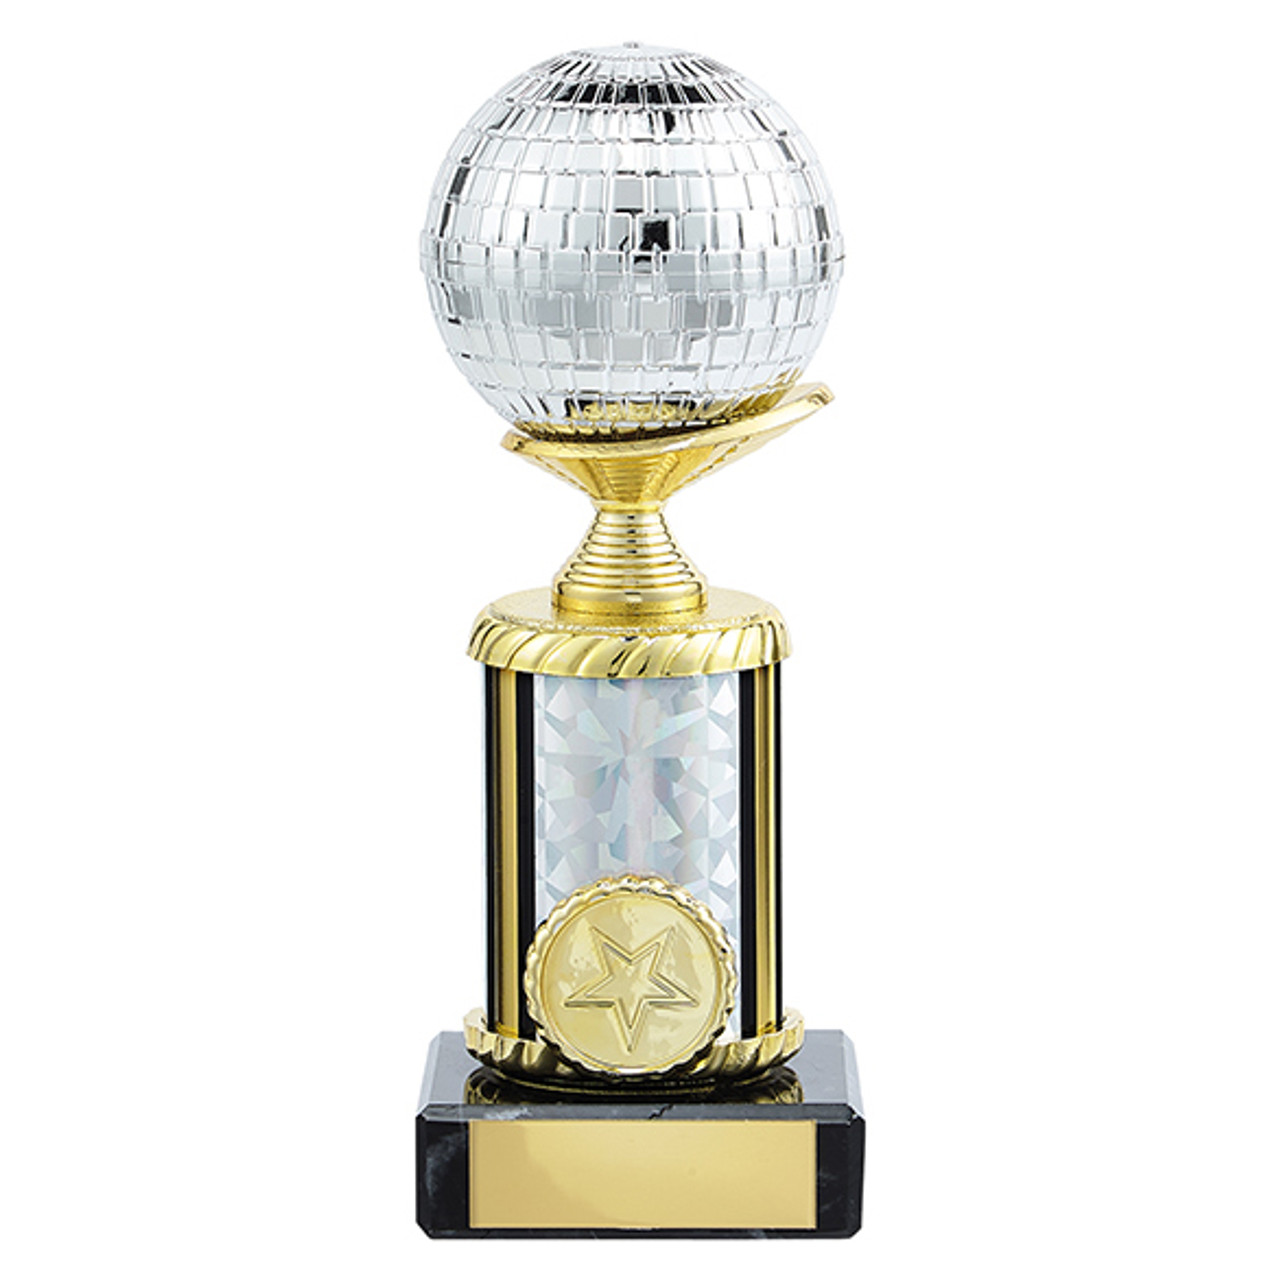 Stunning glitterball dance trophy available in 6 super sizes at 1st Place 4 Trophies